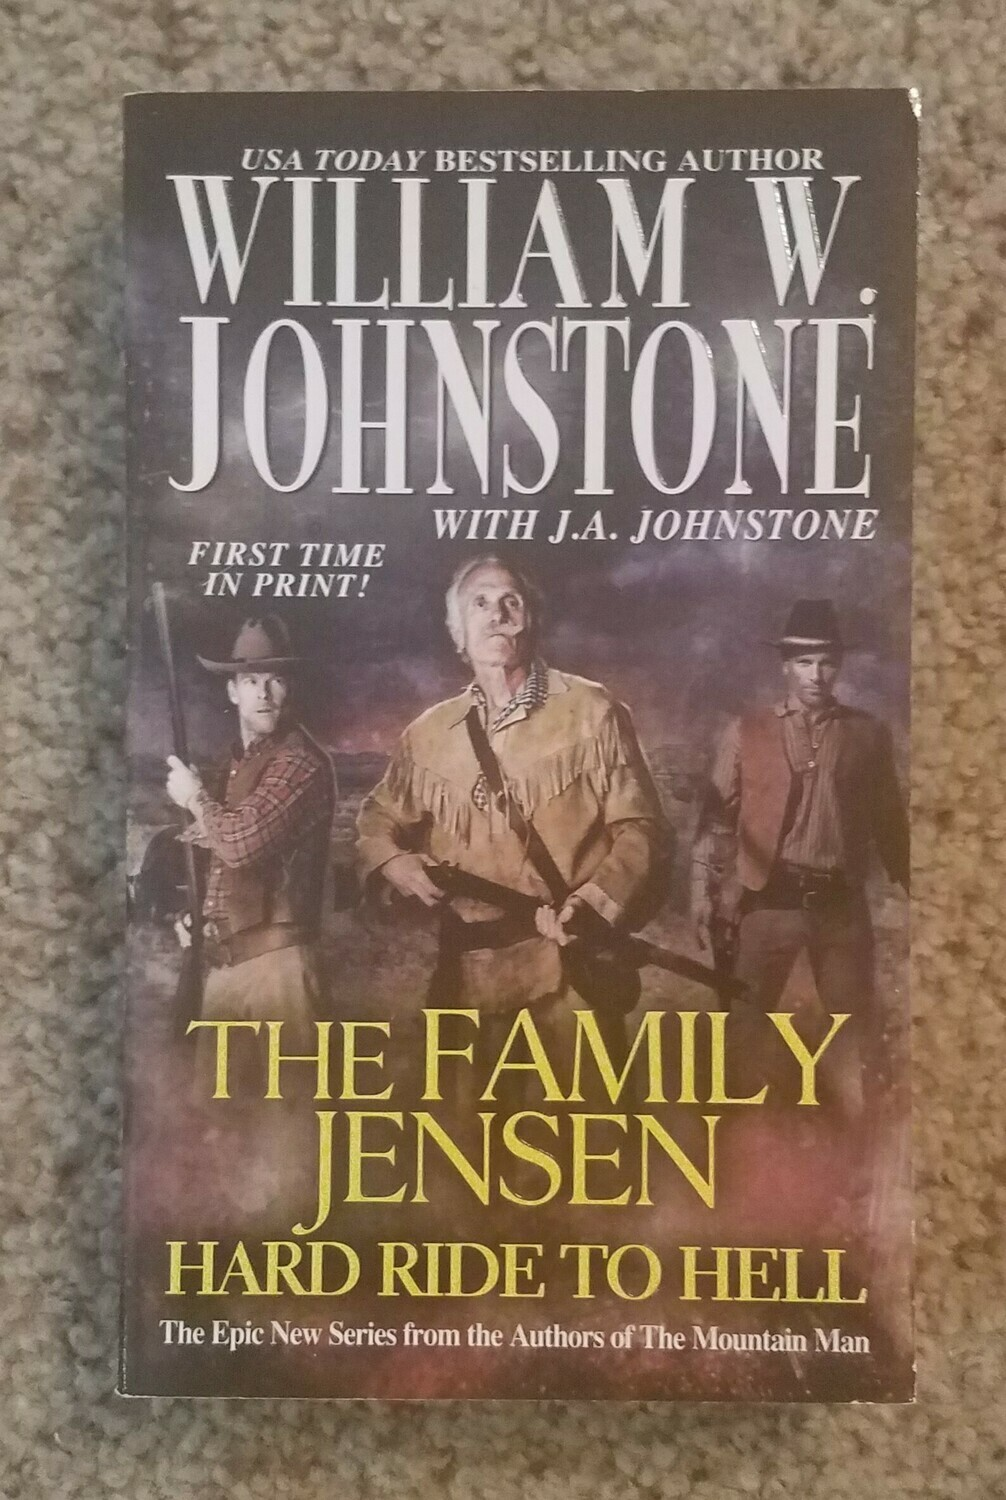 The Family Jensen: Hard Ride to Hell by William W. Johnstone with J.A. Johnstone